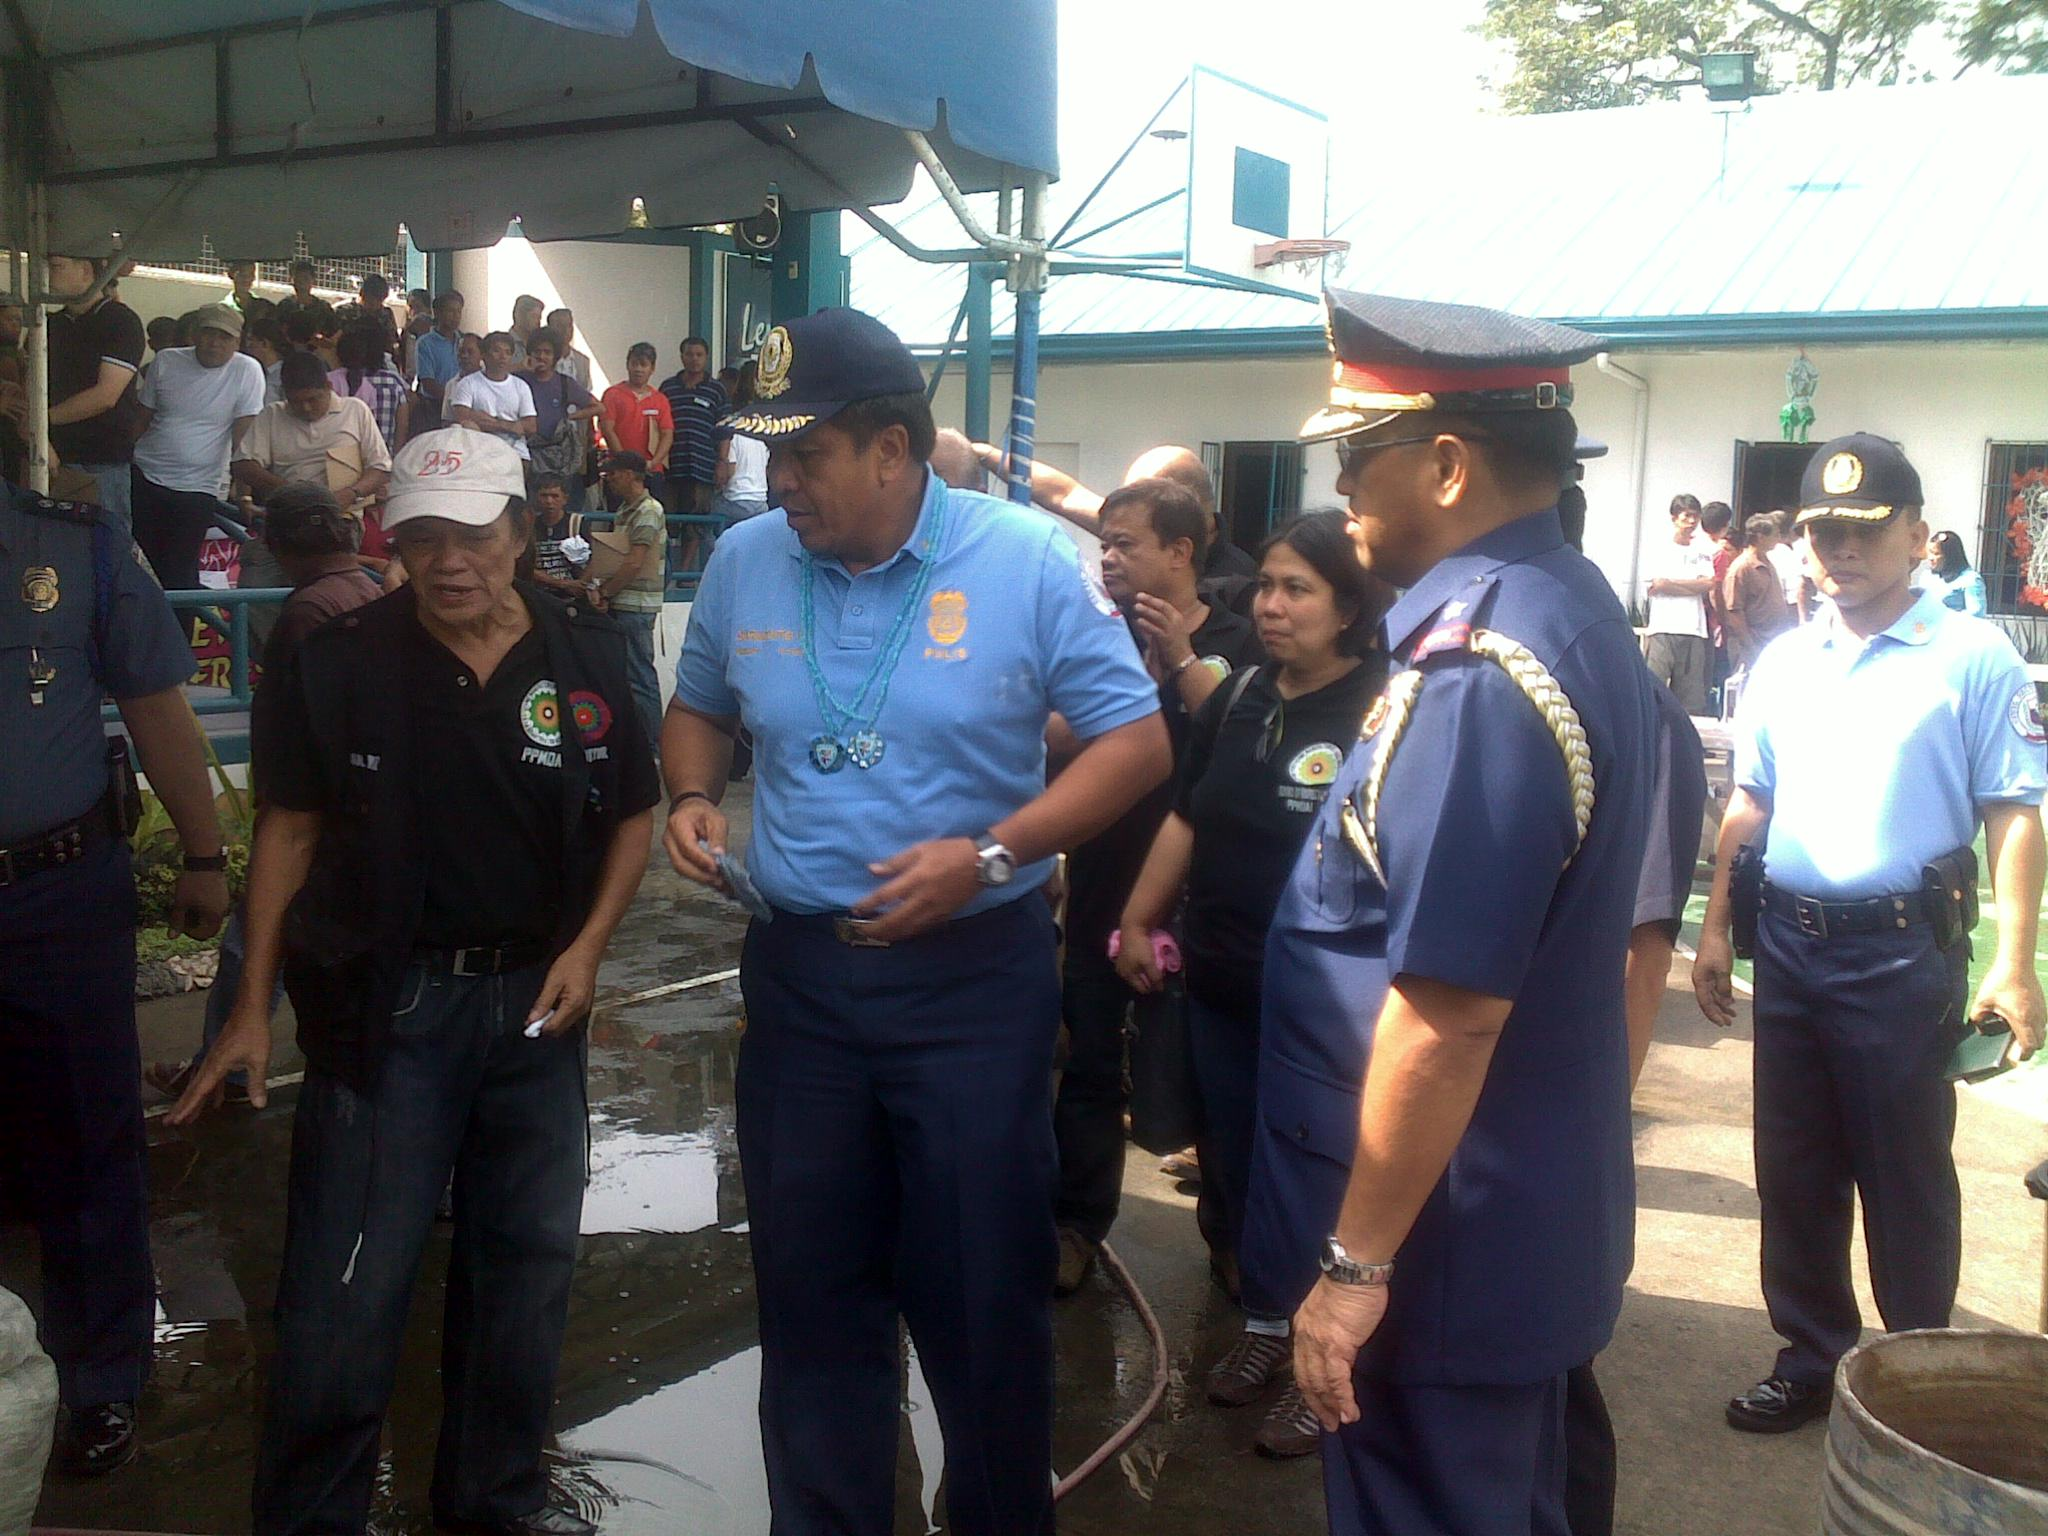 Ppmdai Blog Archive Visayas Fireworks Safety Refresher Seminar Speaker Protector Don8217t Connect Your Before The Amplifier Is Powered